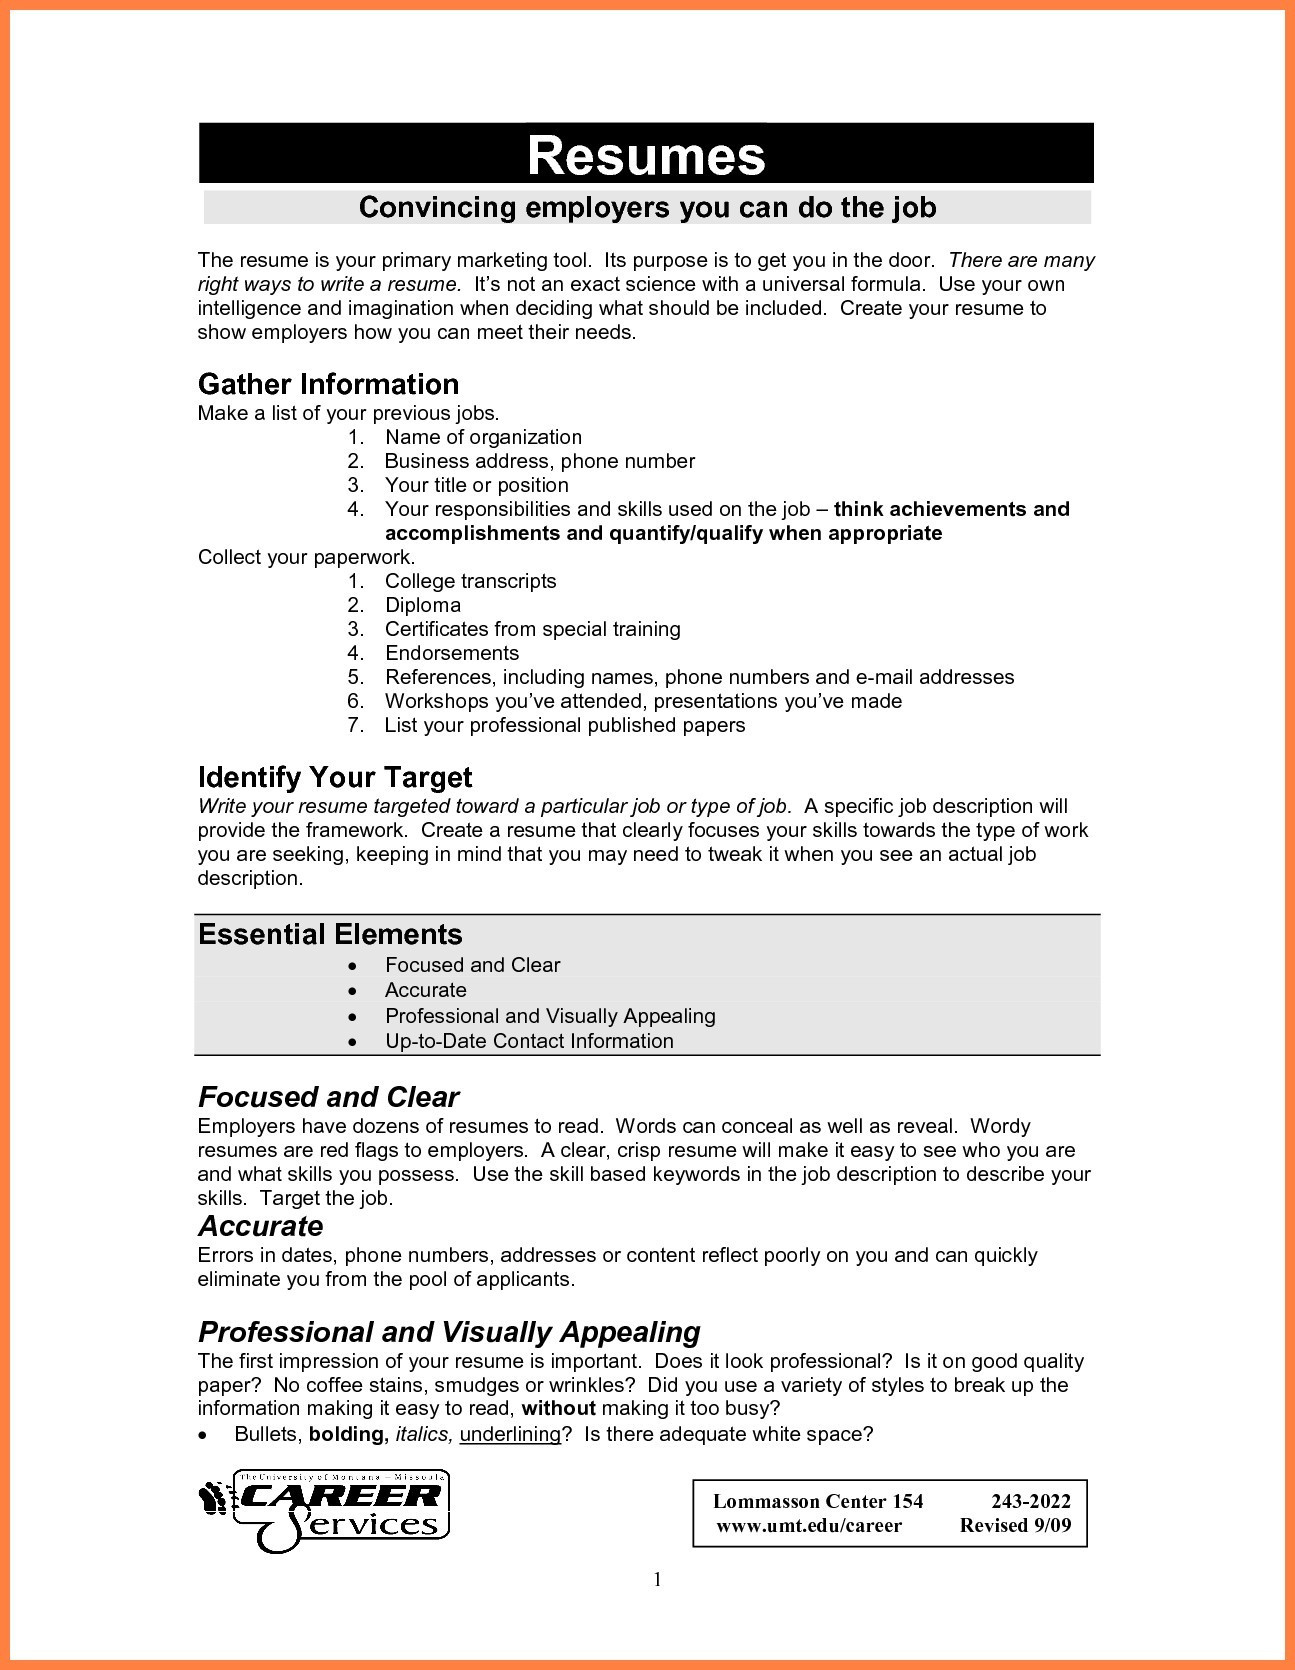 Resume for Marketing Job - How to Do A Cv for A Job Example Lovely Resume Cover Letter Sample